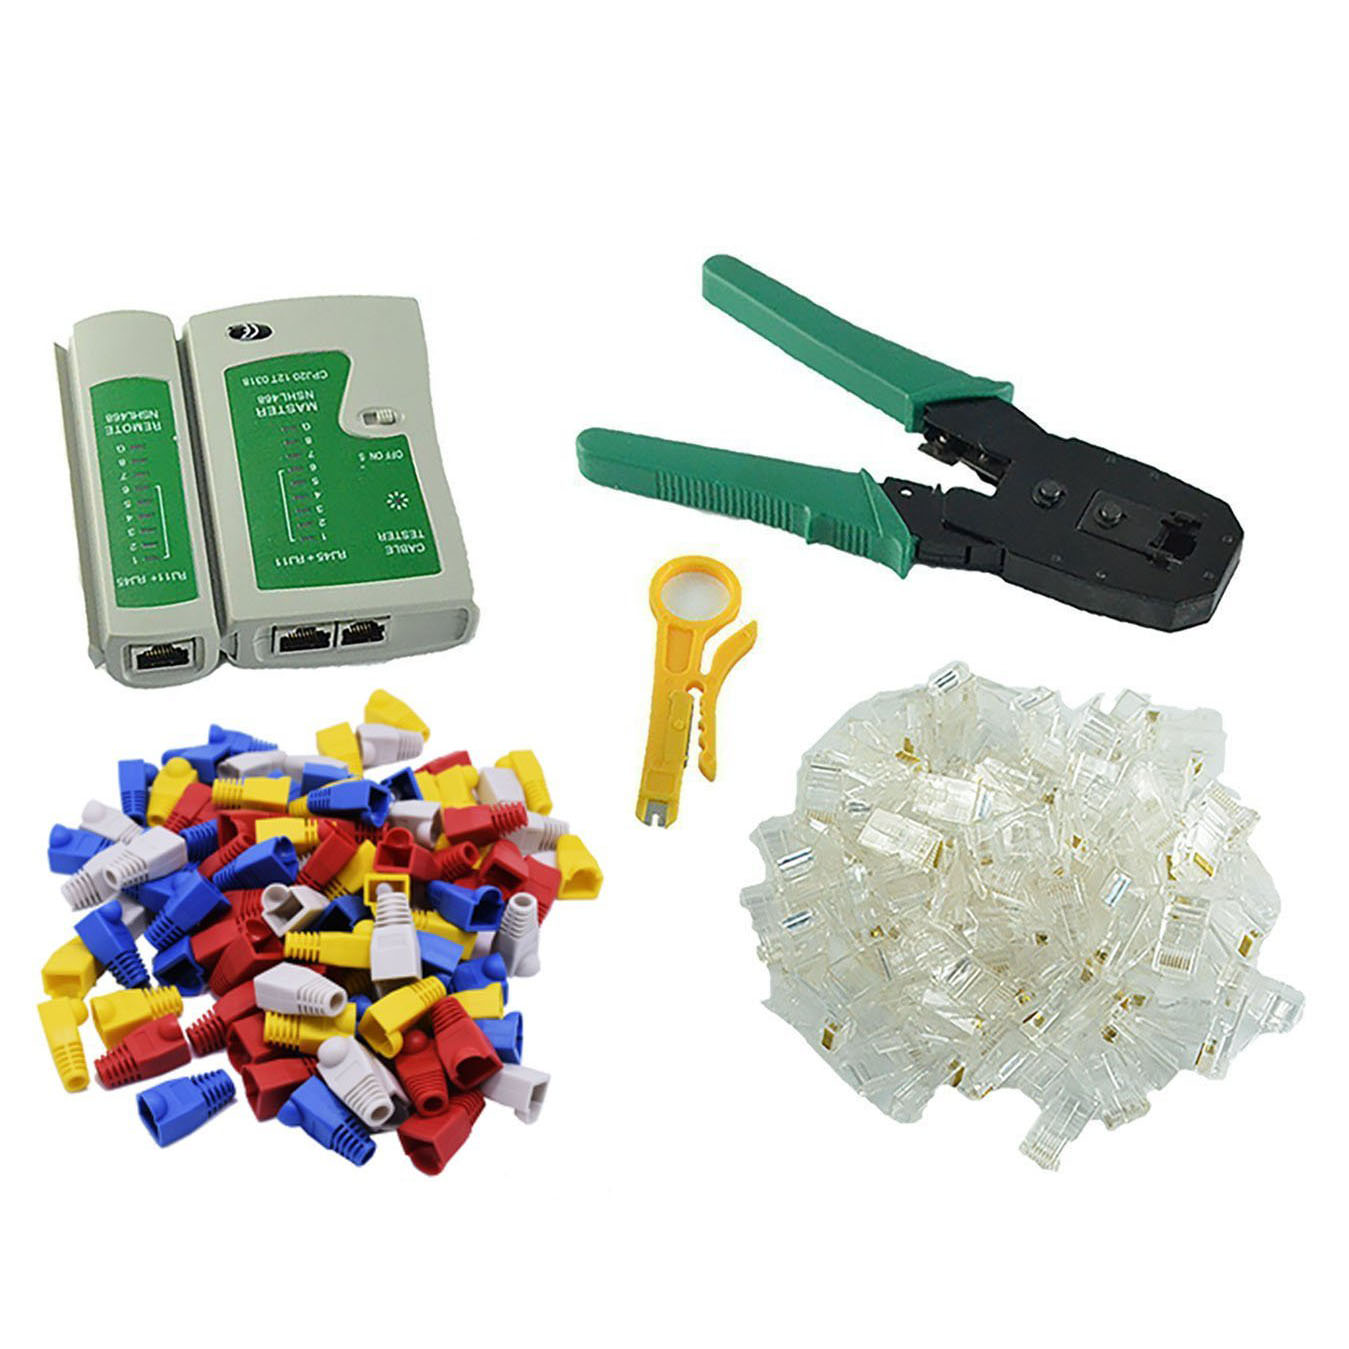 Multifunction RJ11 RJ45 Cat5 Cat6 Crimping Plier Network Crimper Tools Kit With 100 8P8C Connector Cable Tester 100 Plug Cover cncob 8p8c rj45 cable crimper ethernet perforated connector crimping tools multi function network tools cable clamps